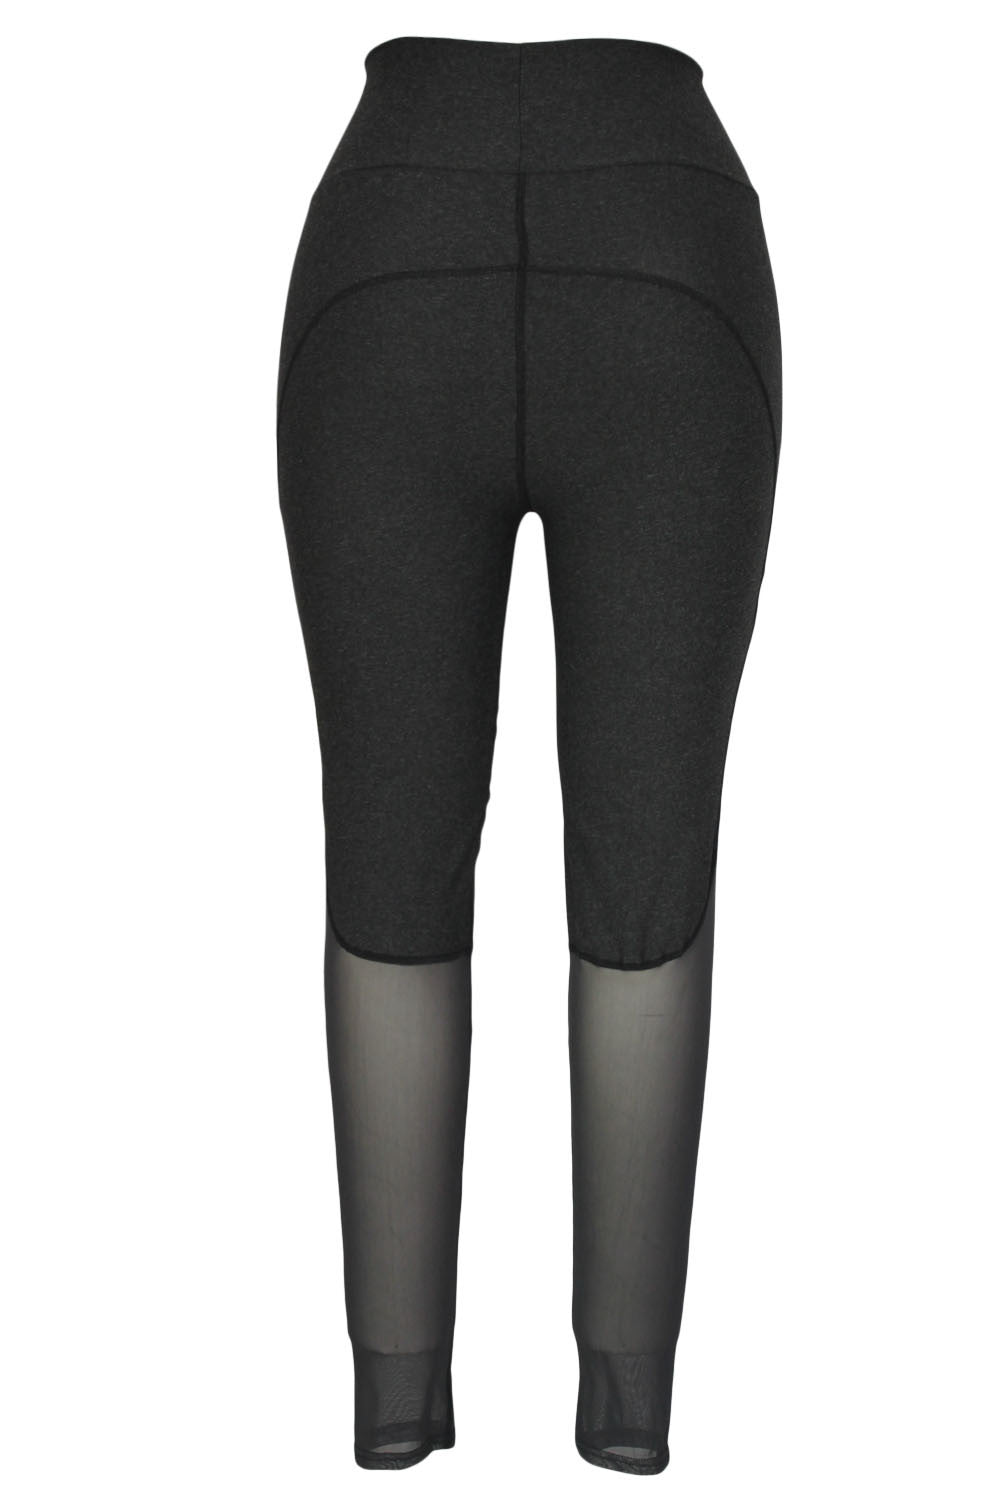 Grey Slimming Effect Sport Legging with Mesh - Jahnell's Closet